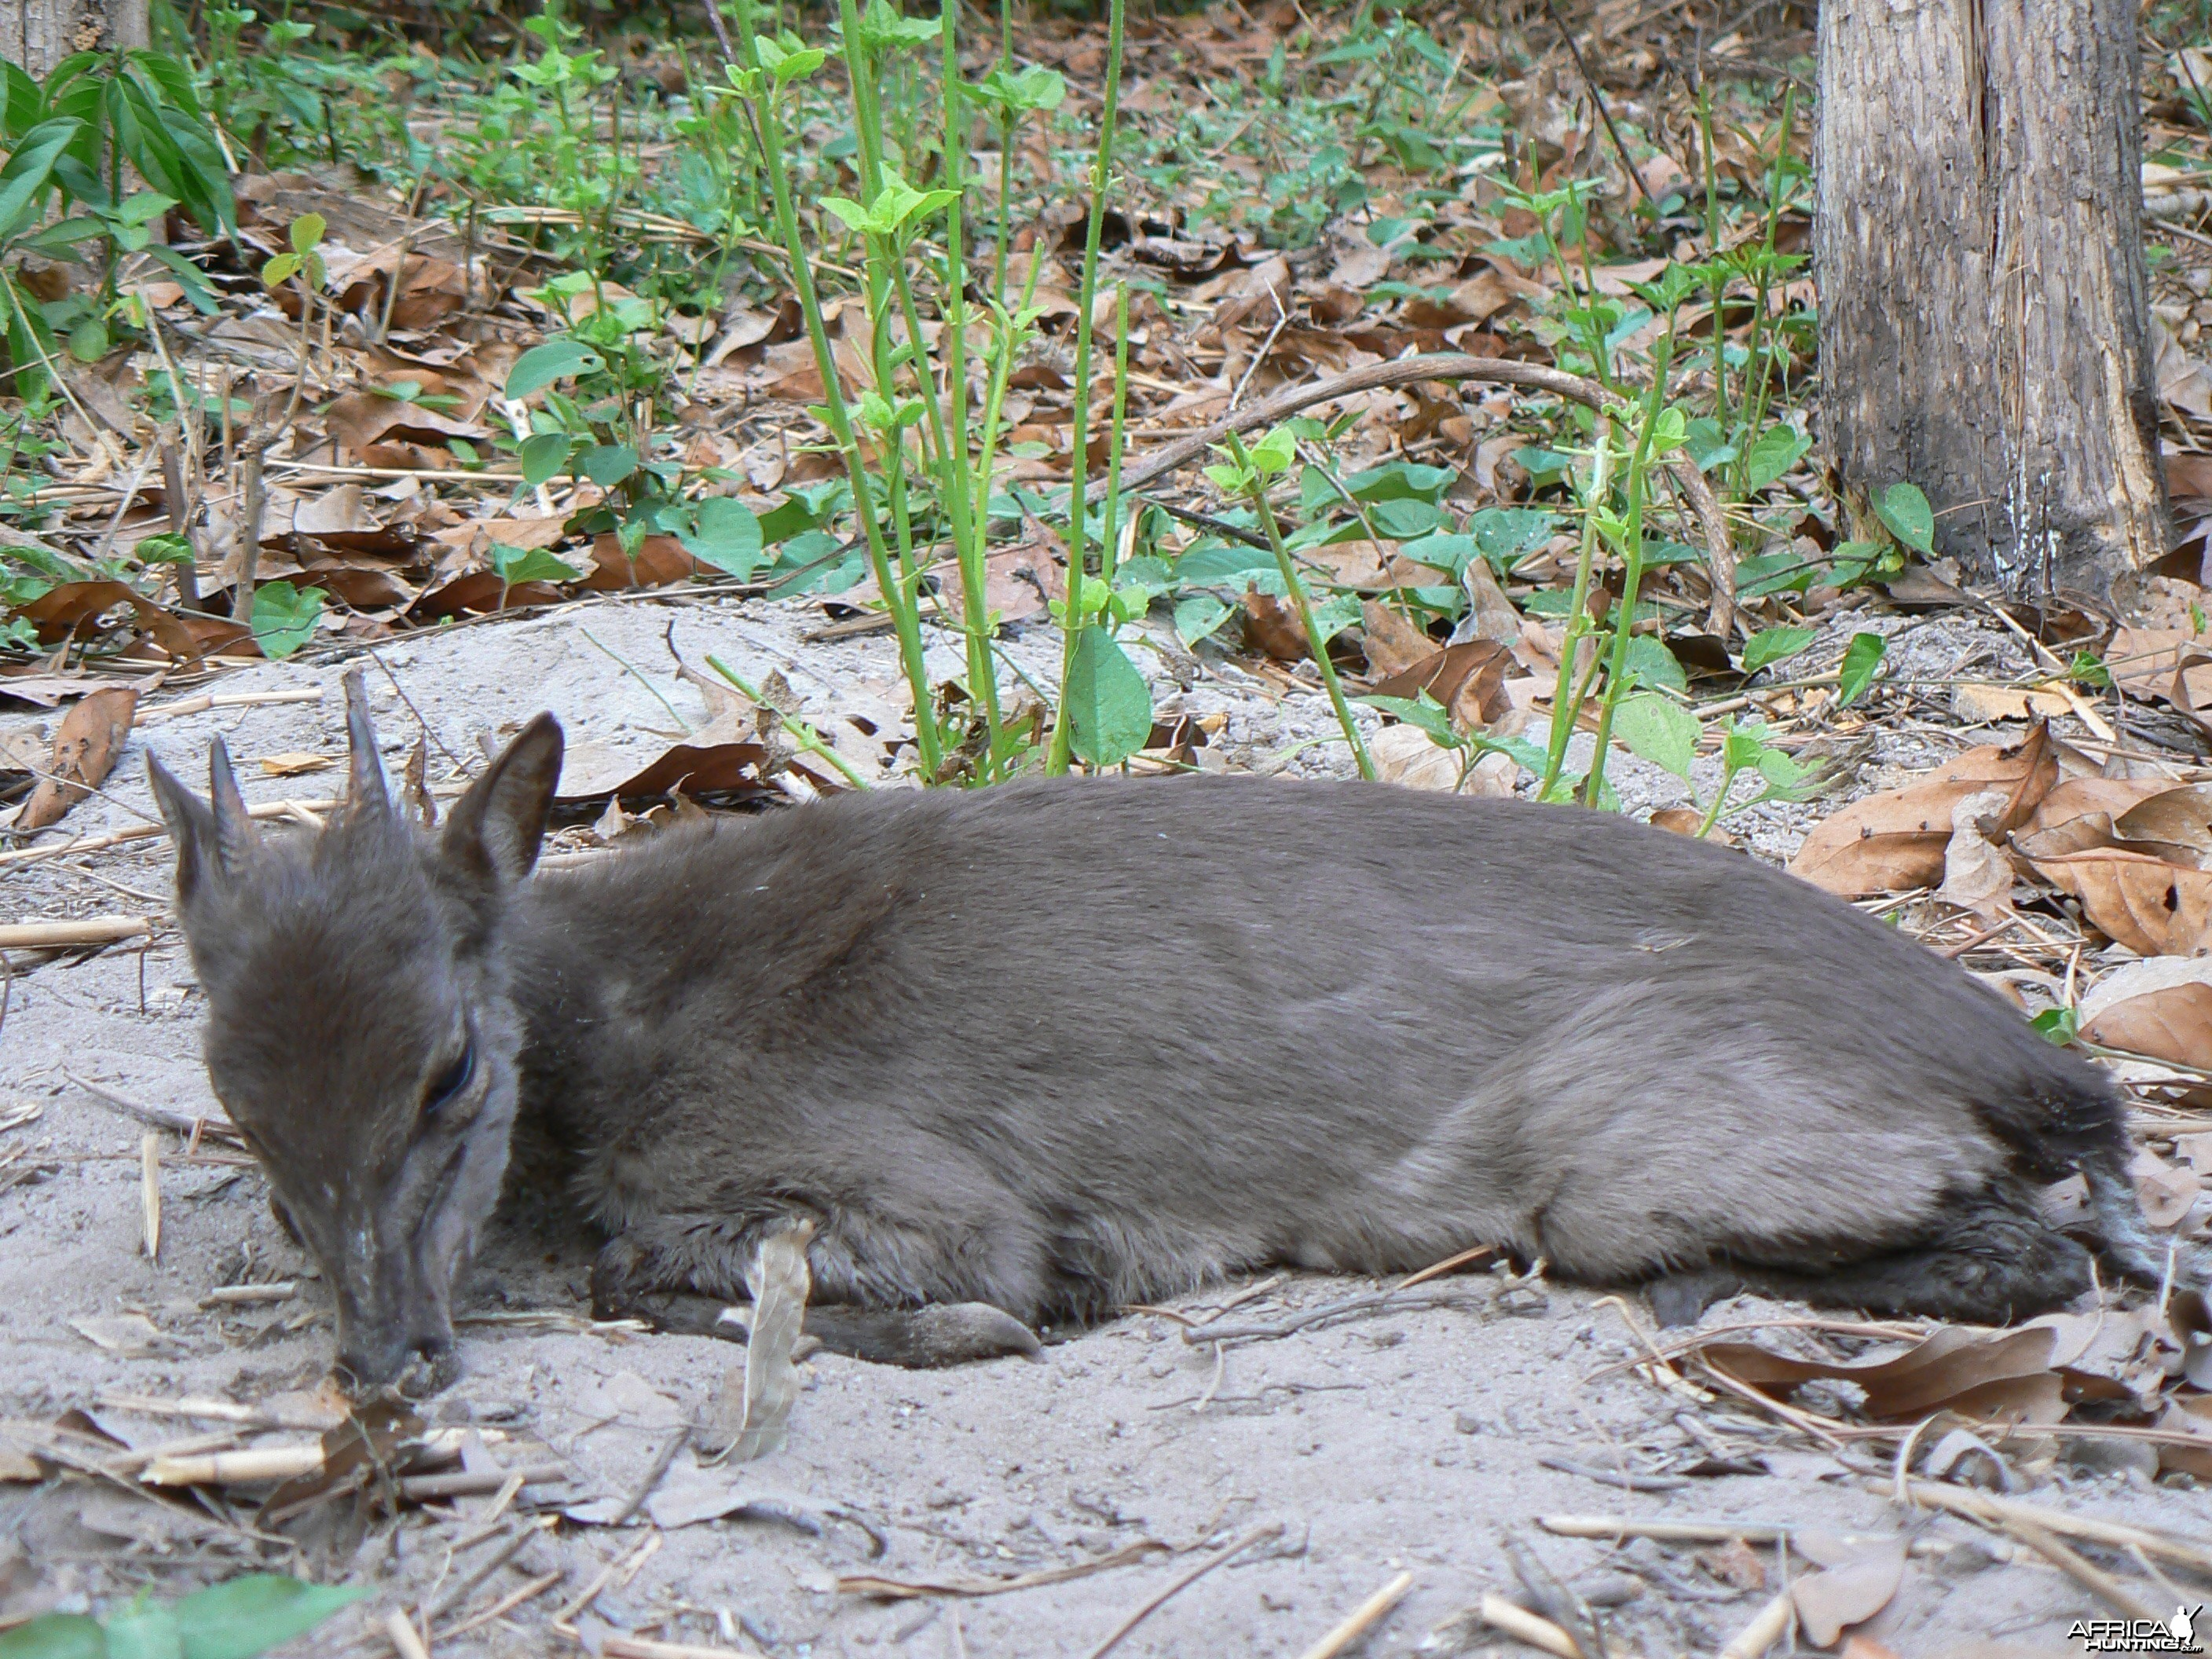 Blue duiker from CAR